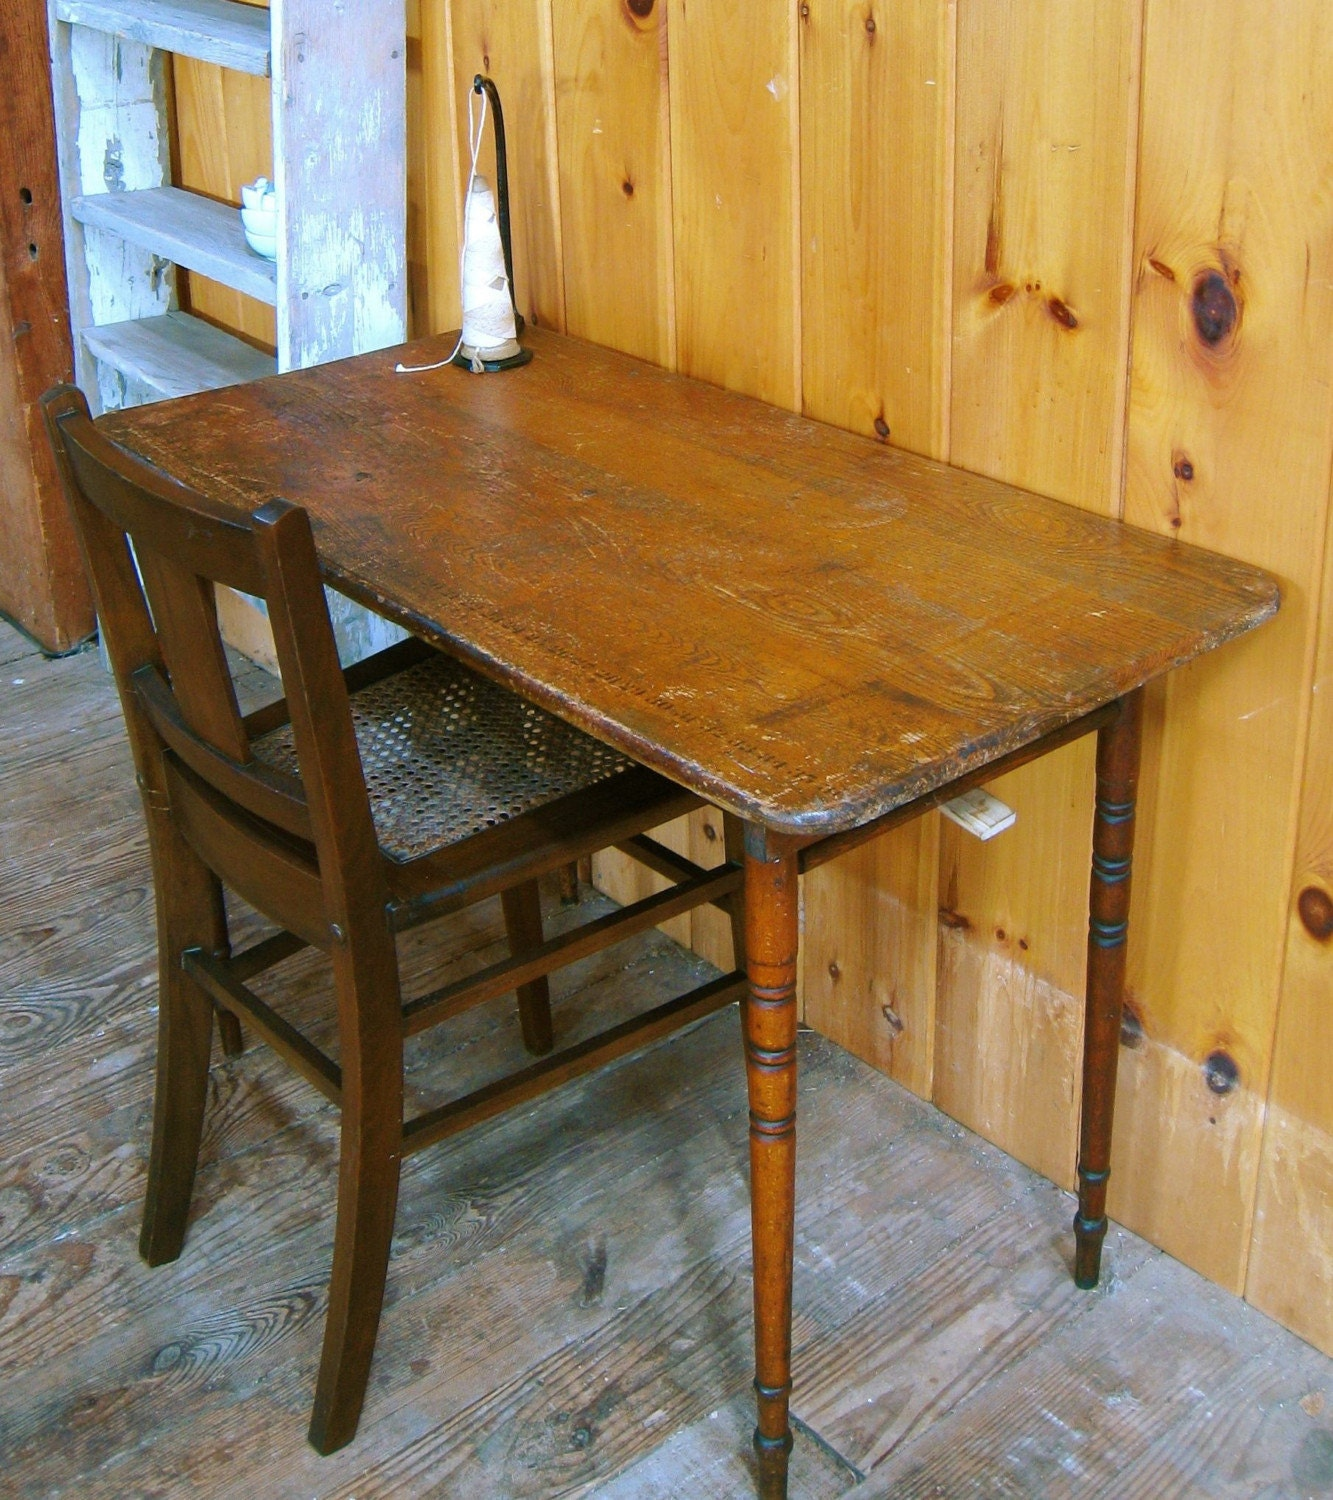 ... together with Id F 440776. on 1940s mahogany dining room furniture